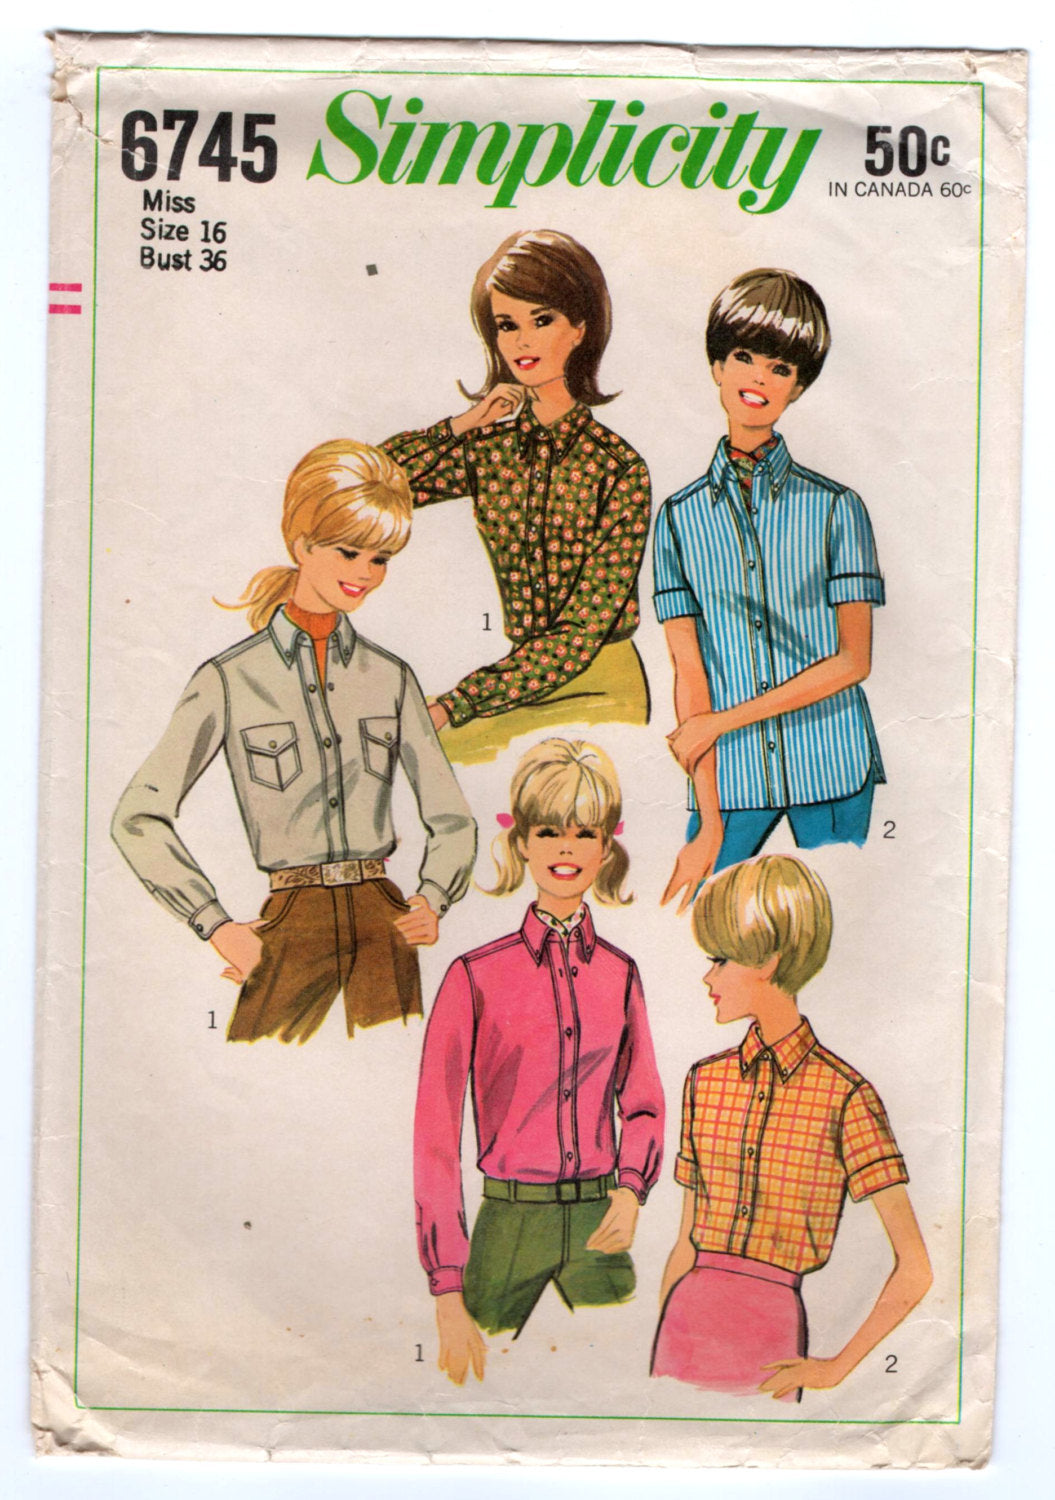 1960's Simplicity Button Up Blouse with Front Pockets and Two Sleeve lengths Pattern - Bust 36